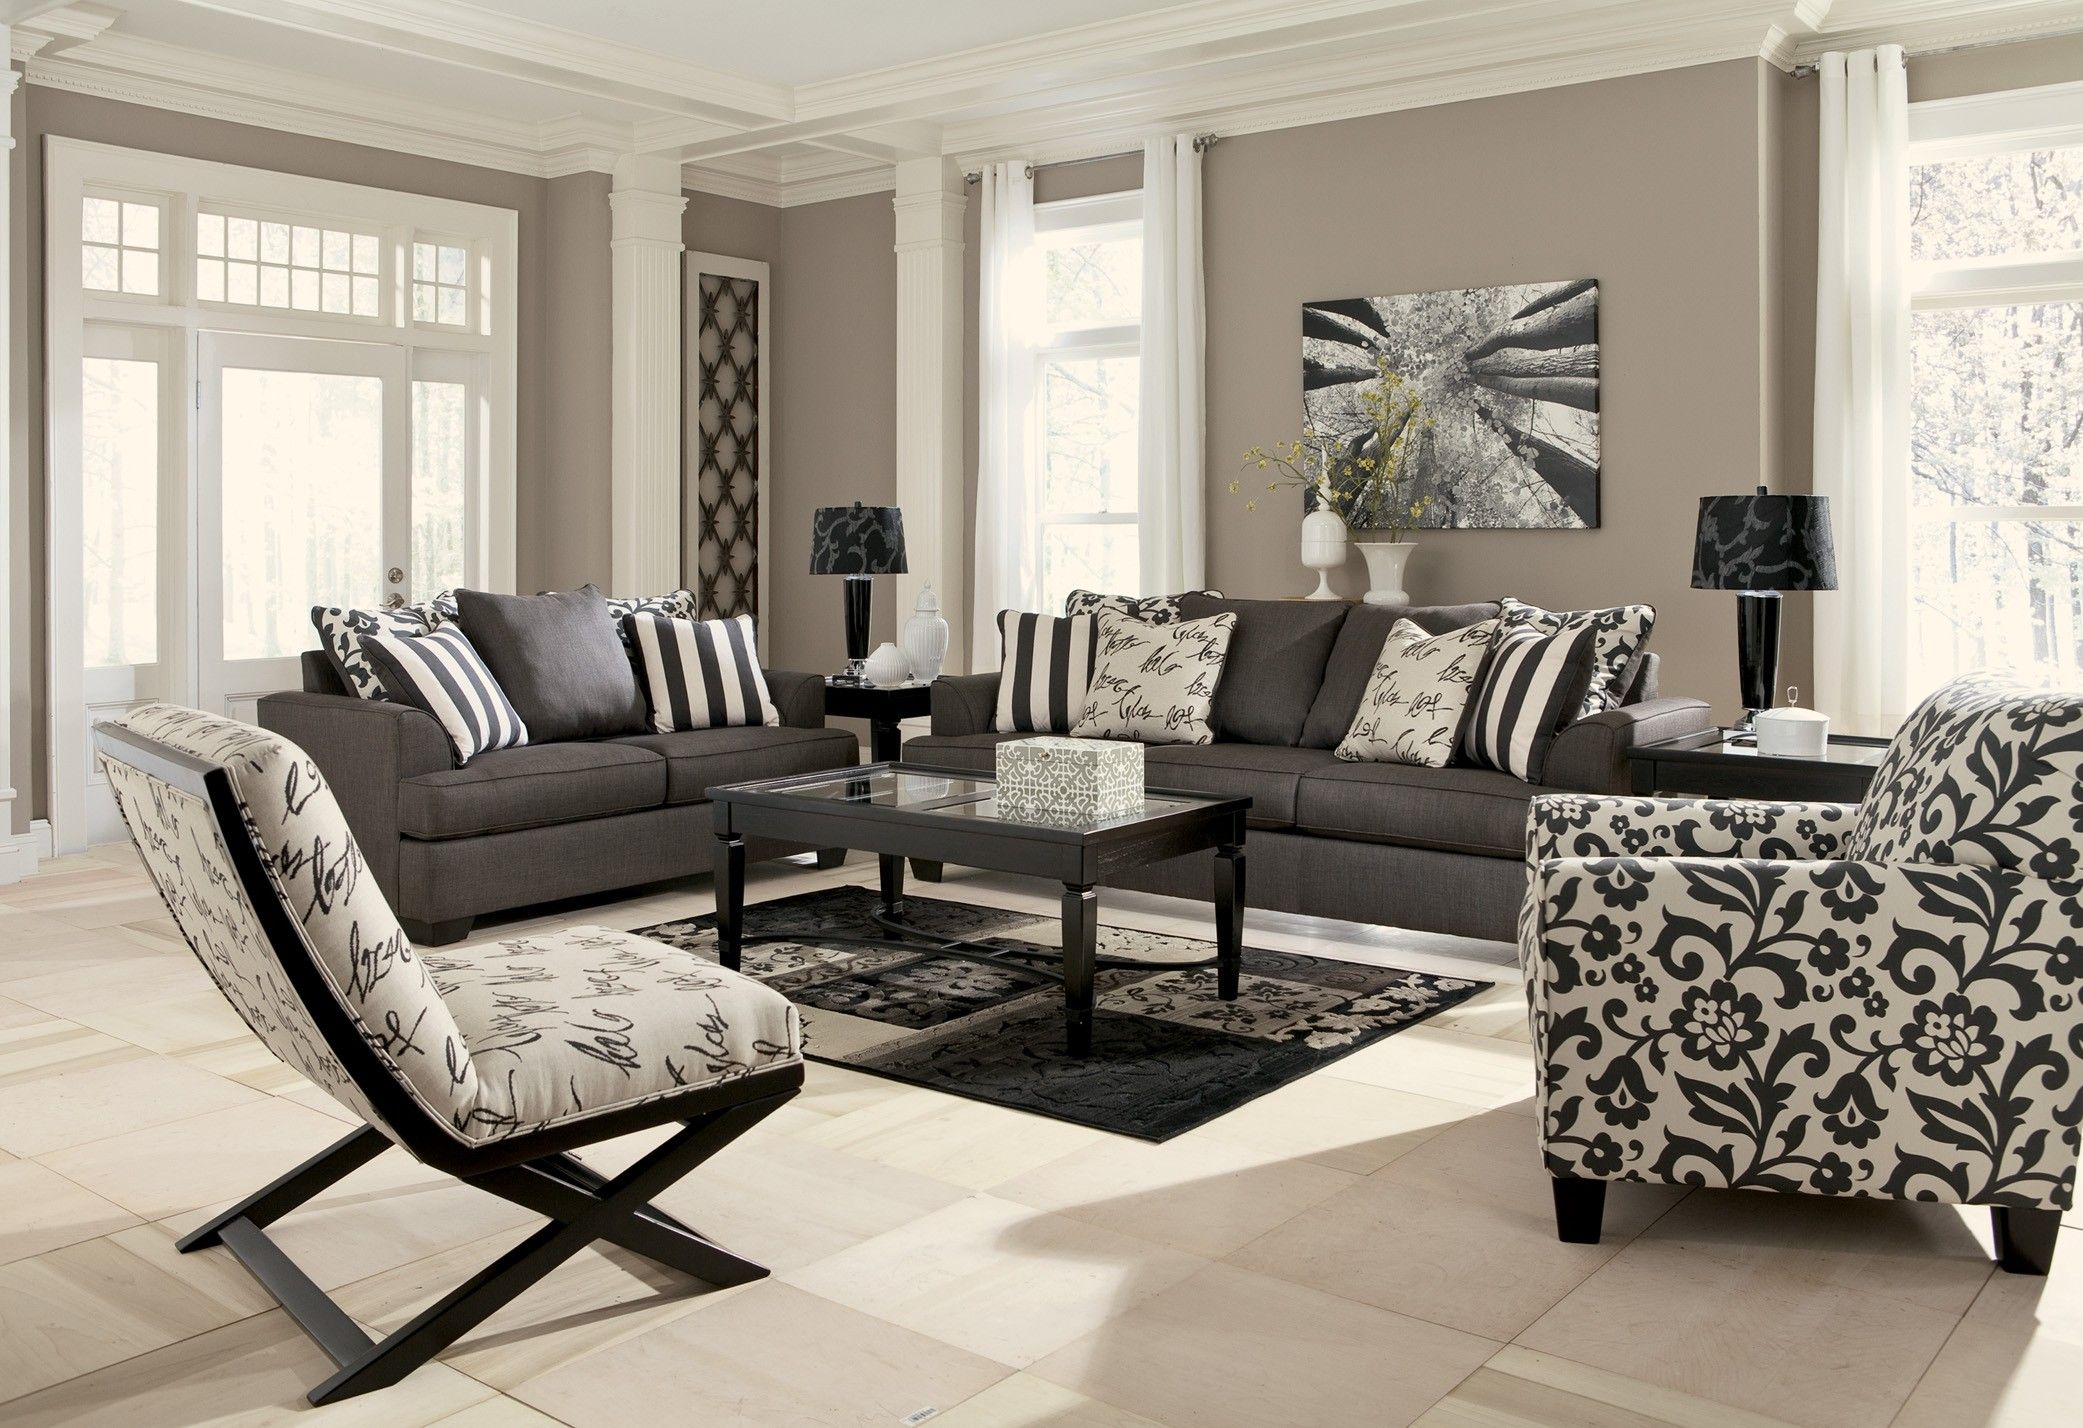 Ashley Furniture Living Room Sets Part - 40: ... Design That Perfectly Utilizes Both Style And Comfort, The Levon  Charcoal Living Room Set By Signature Design By Ashley Furniture Features  Plush Boxed